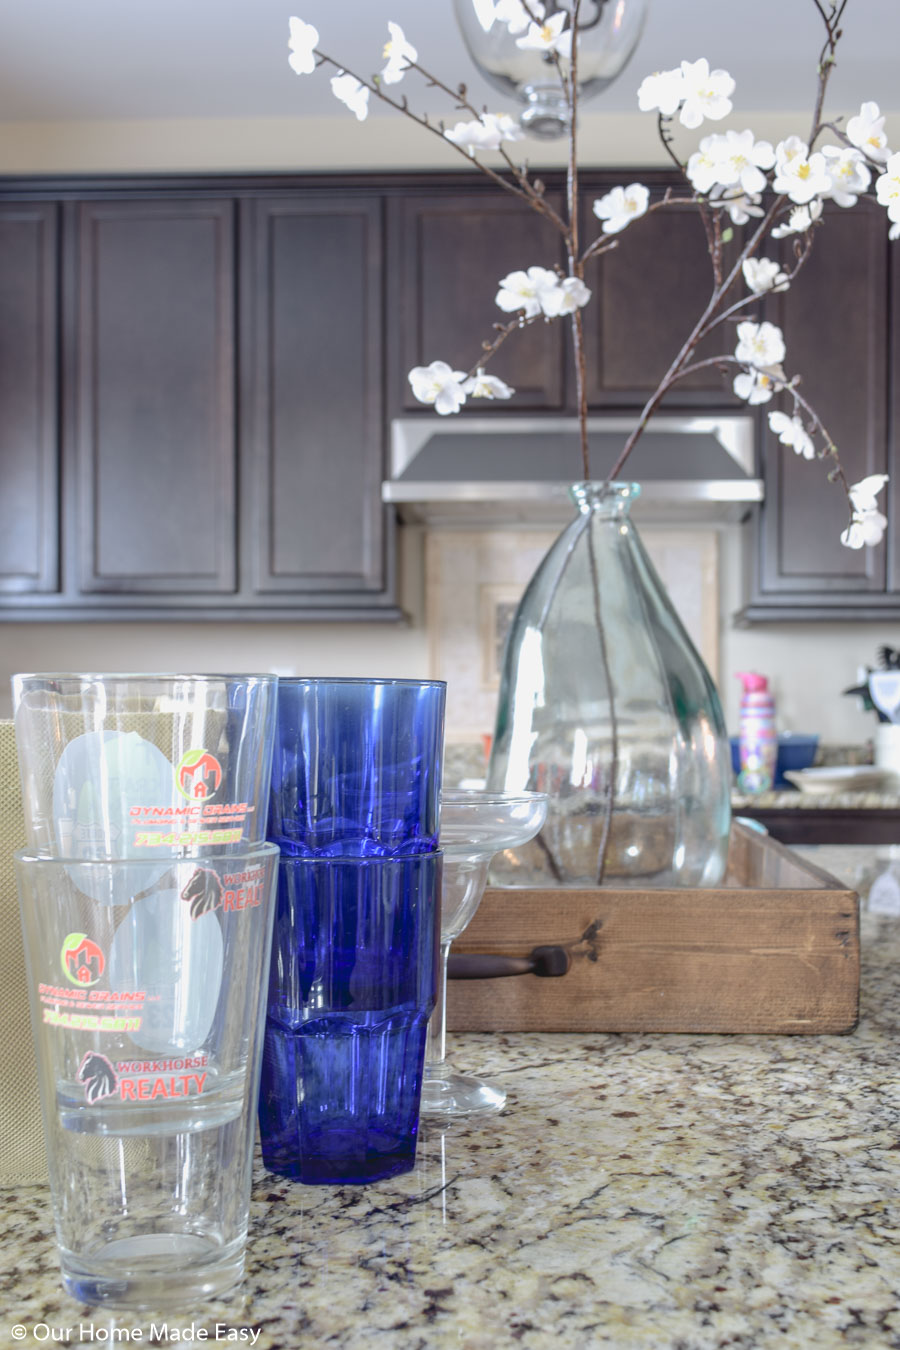 have too many glasses cluttering your cabinets? Here's how to organize your kitchen cabinets better